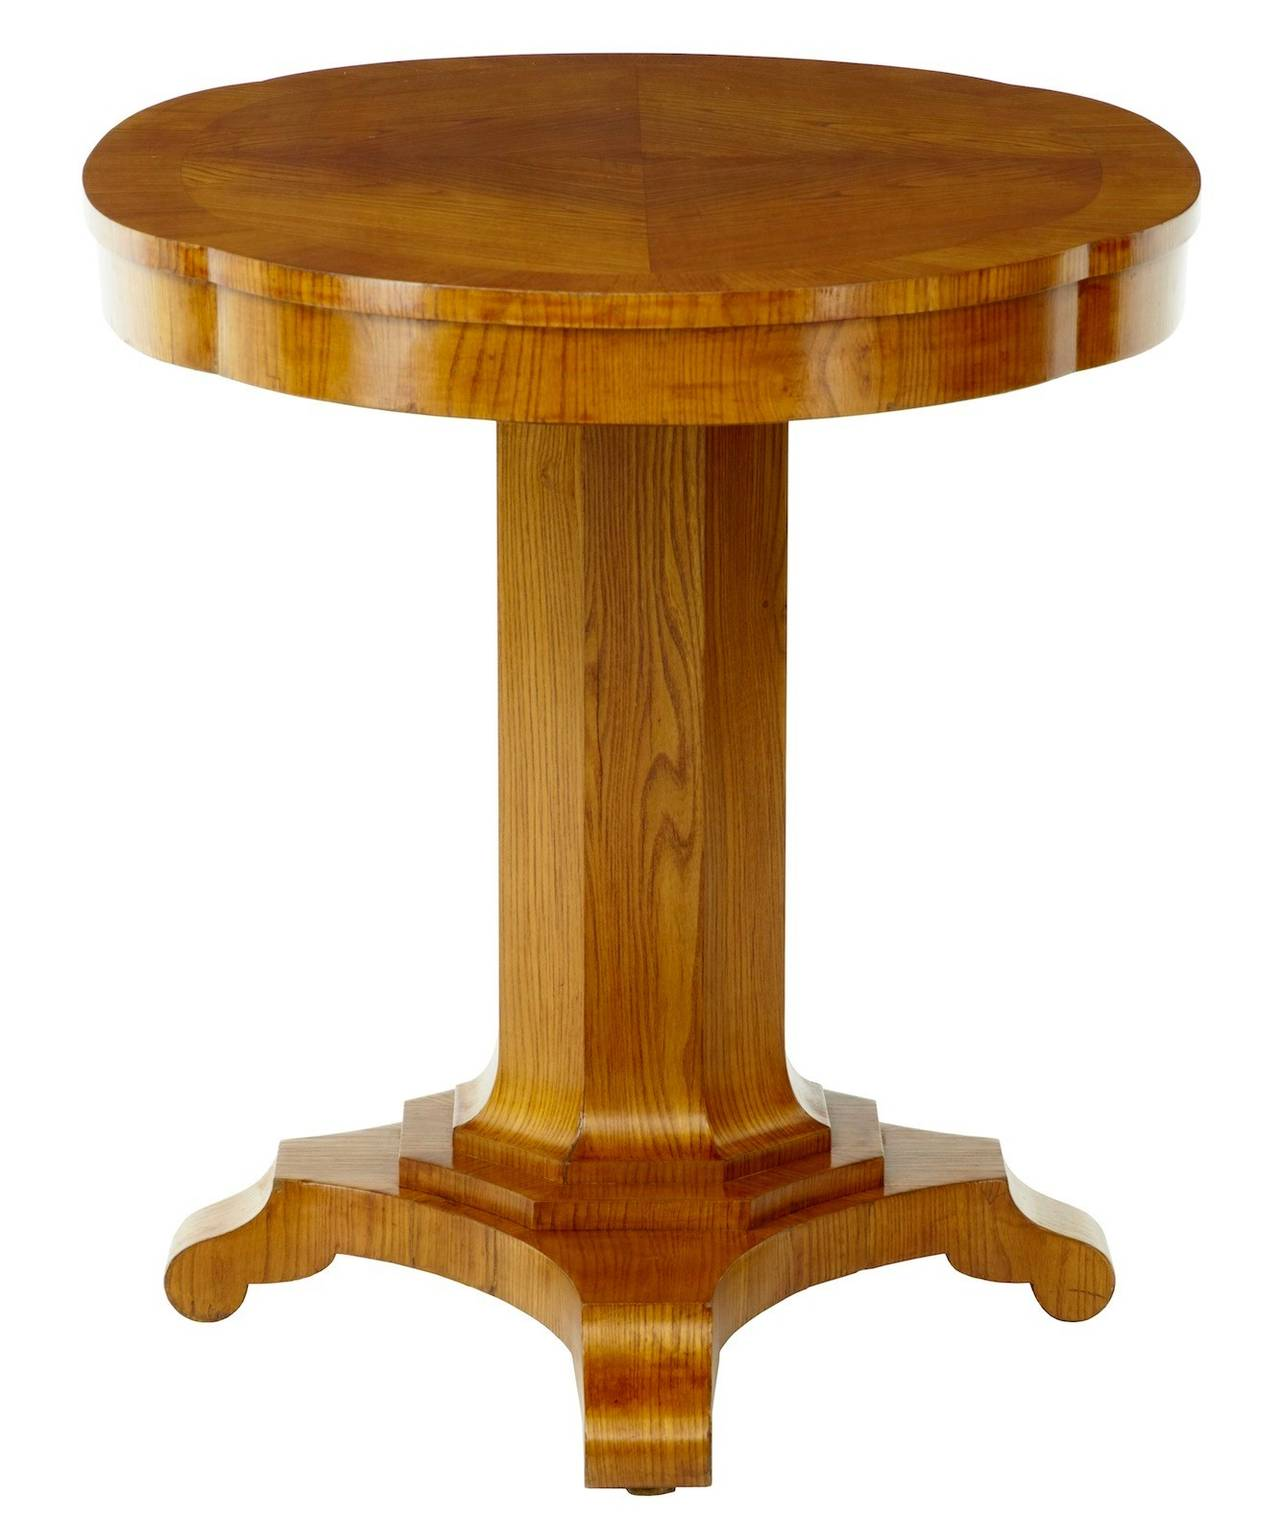 19th century elm centre table, circa 1890.